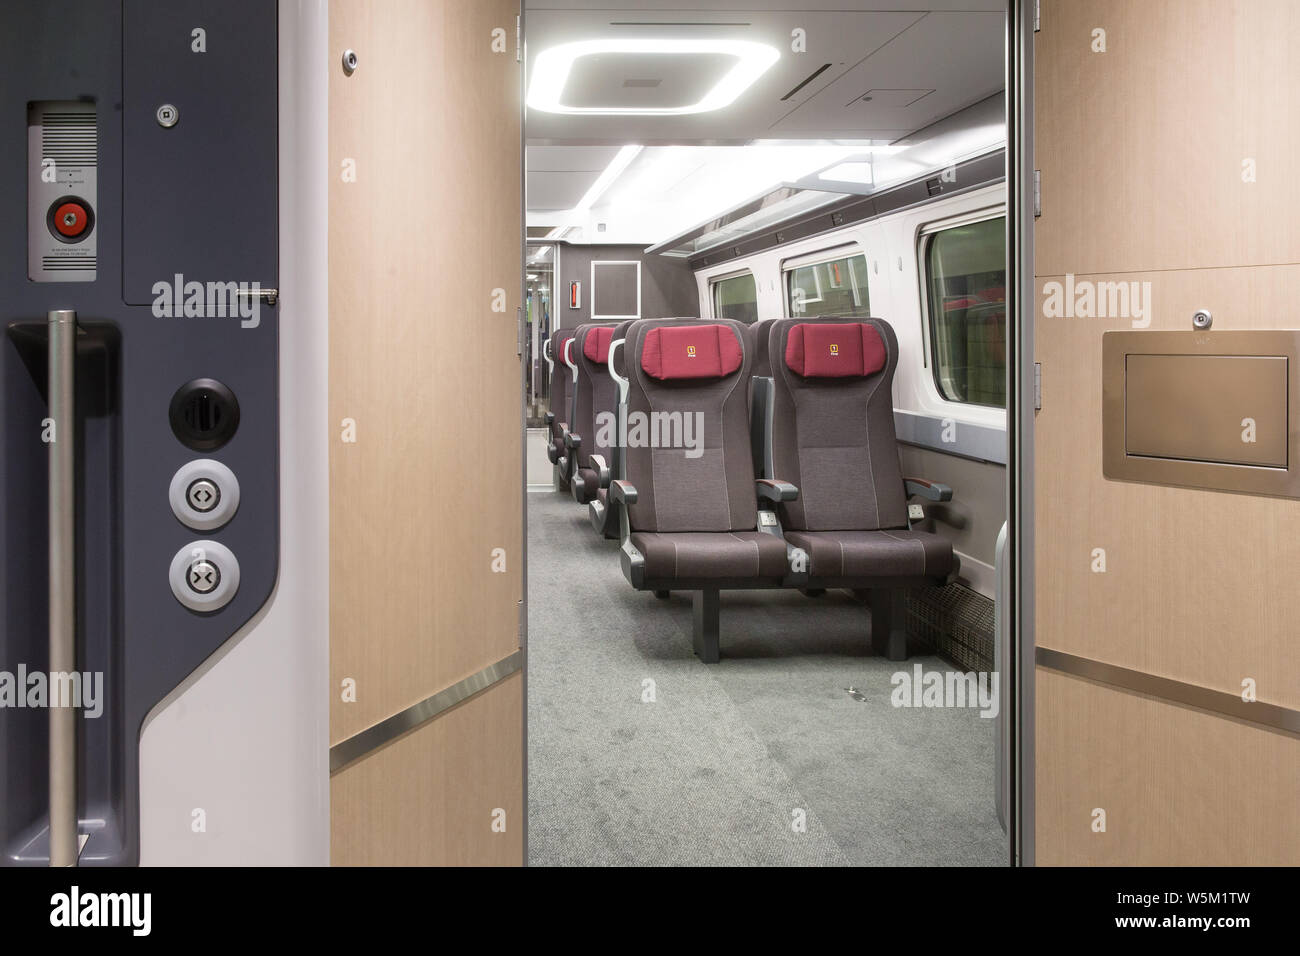 Train Cabin Stock Photos & Train Cabin Stock Images - Alamy